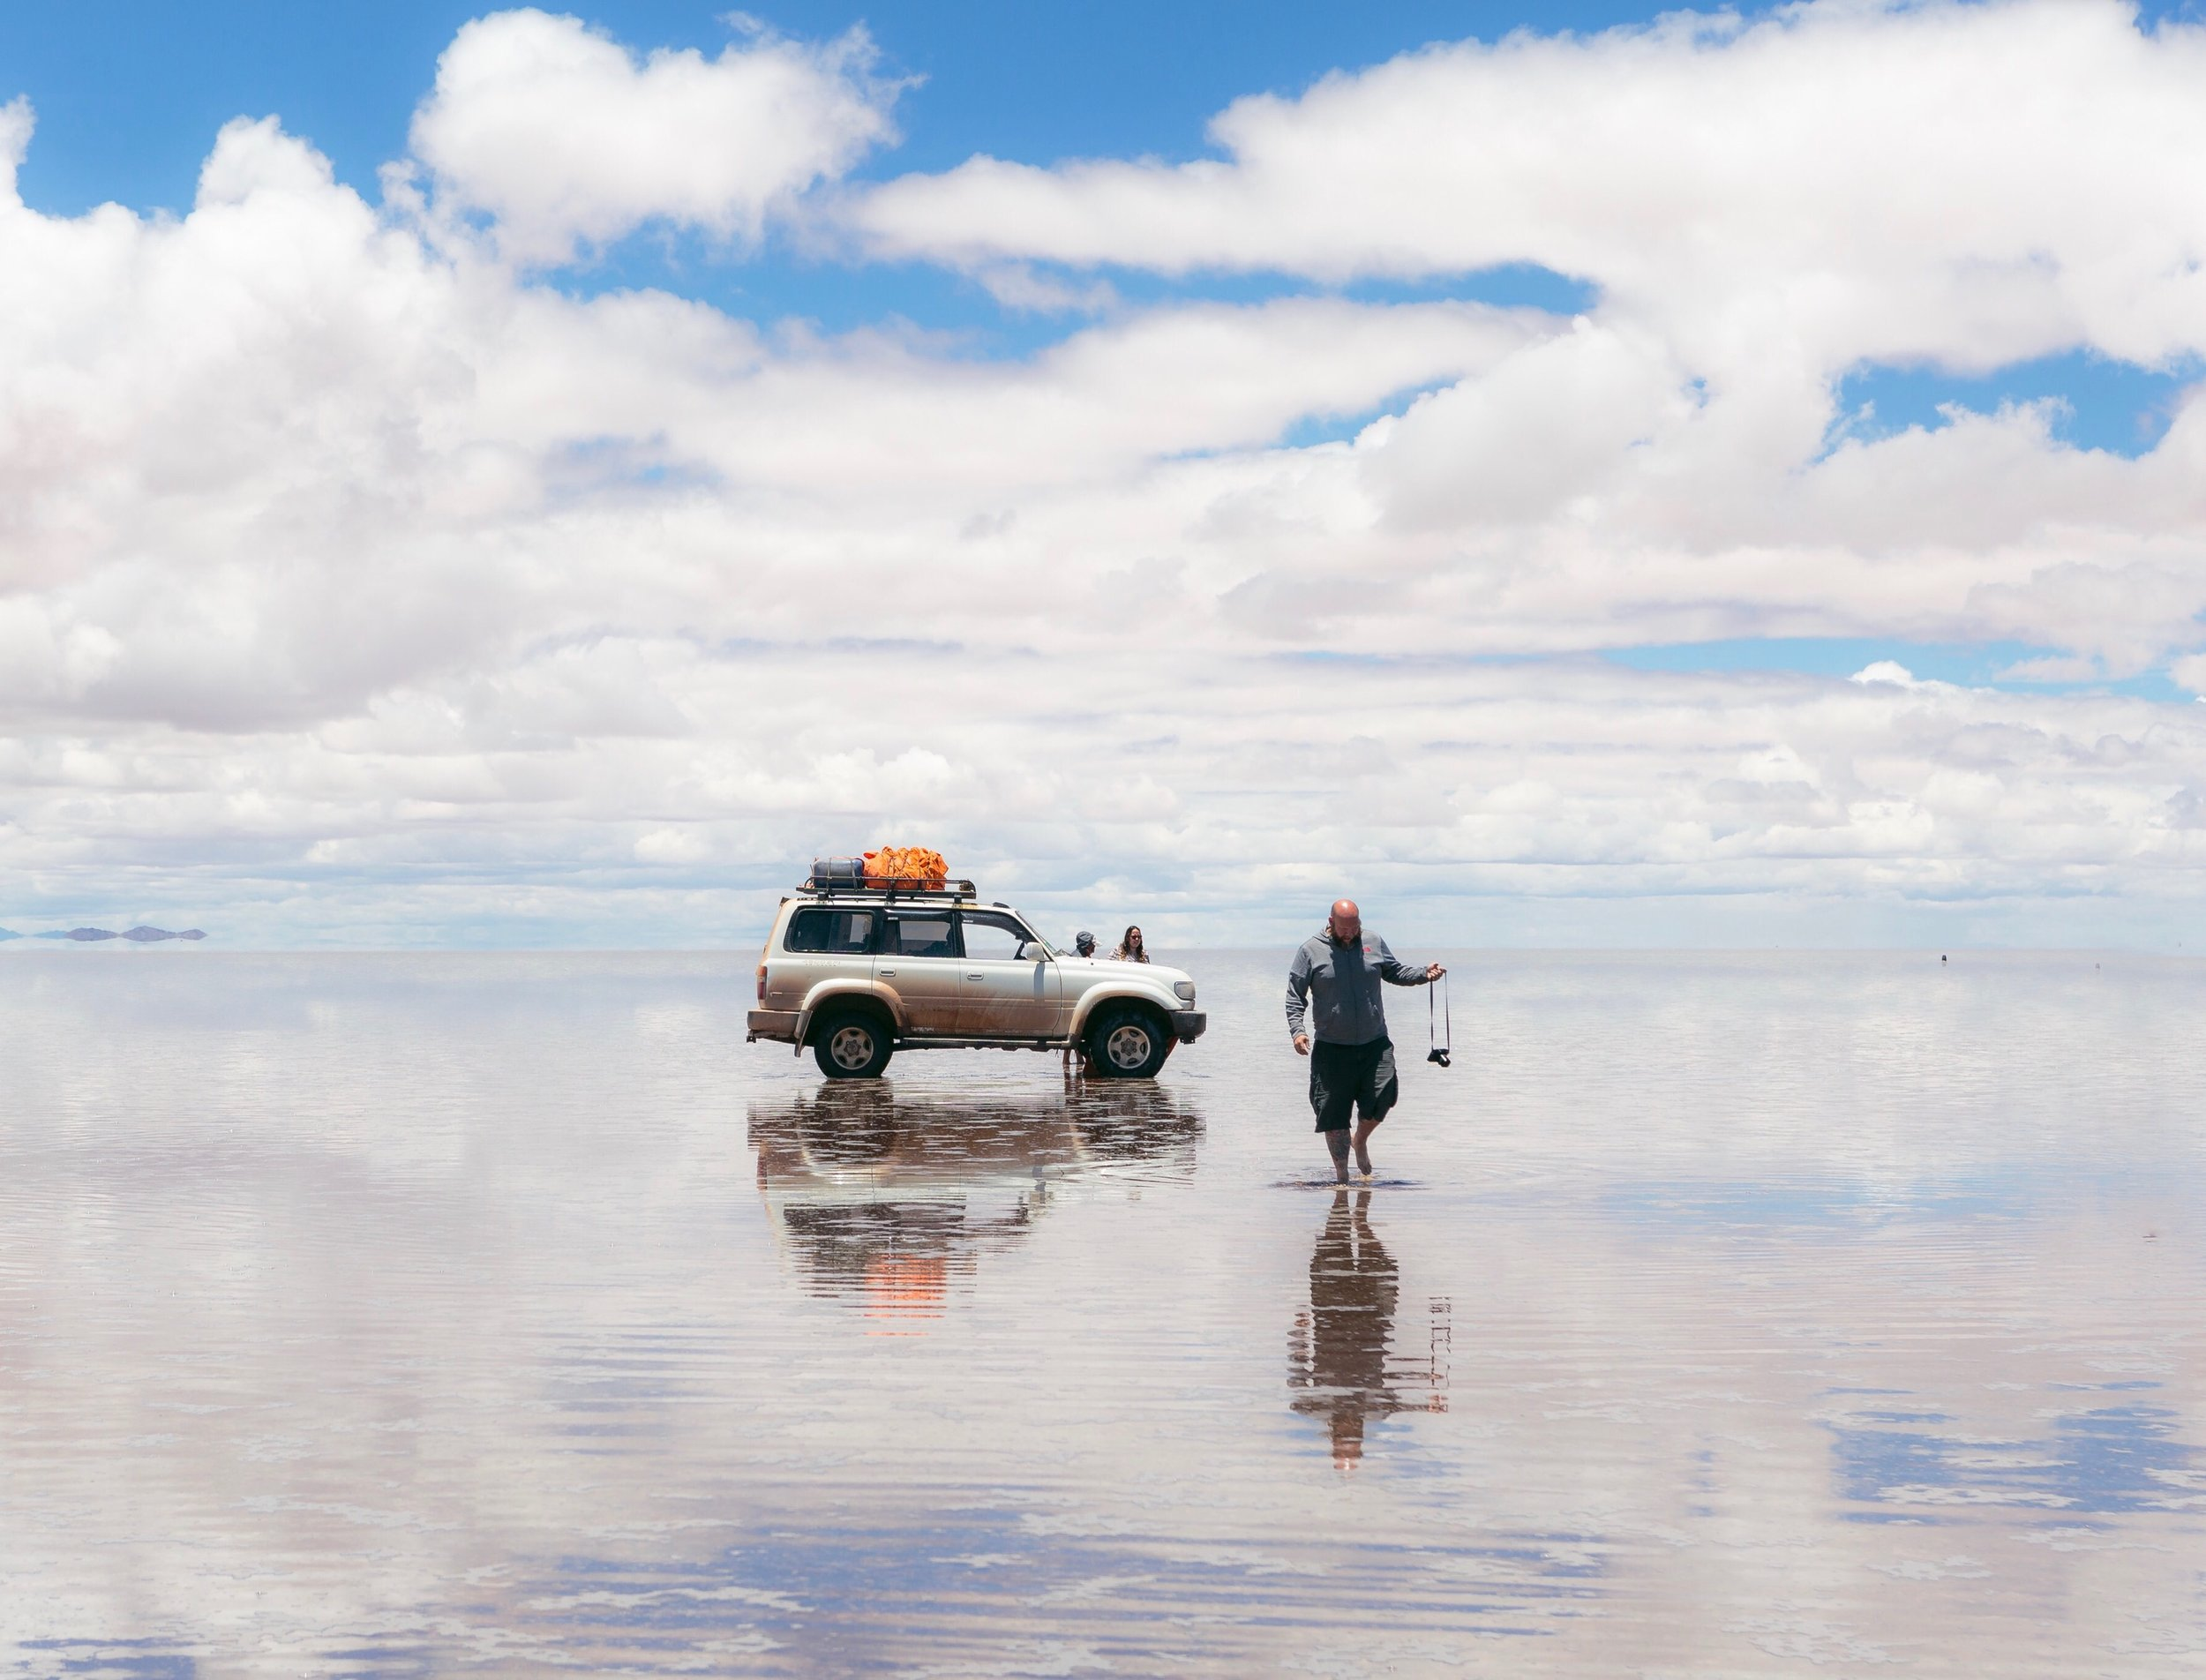 Me on the Salar de Uyuni. Photo by  Brian Stowell